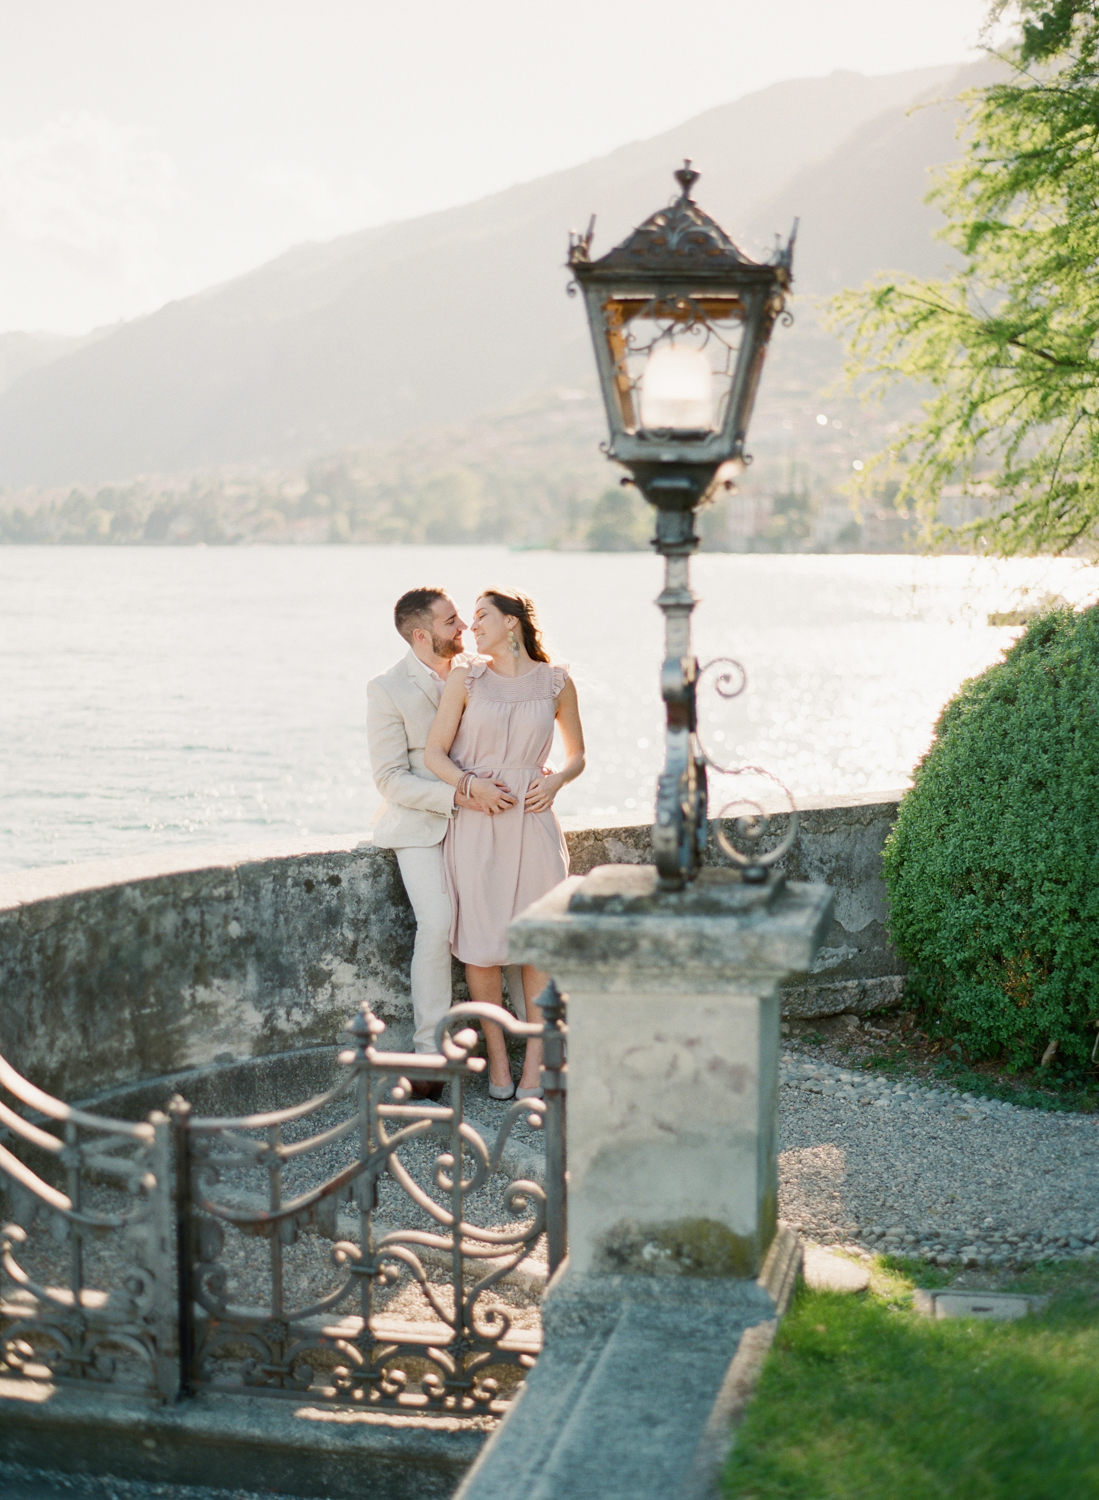 Lake_Como_wedding_photographer_nikol_bodnarova_lake_como_film_wedding_photographer_14.JPG